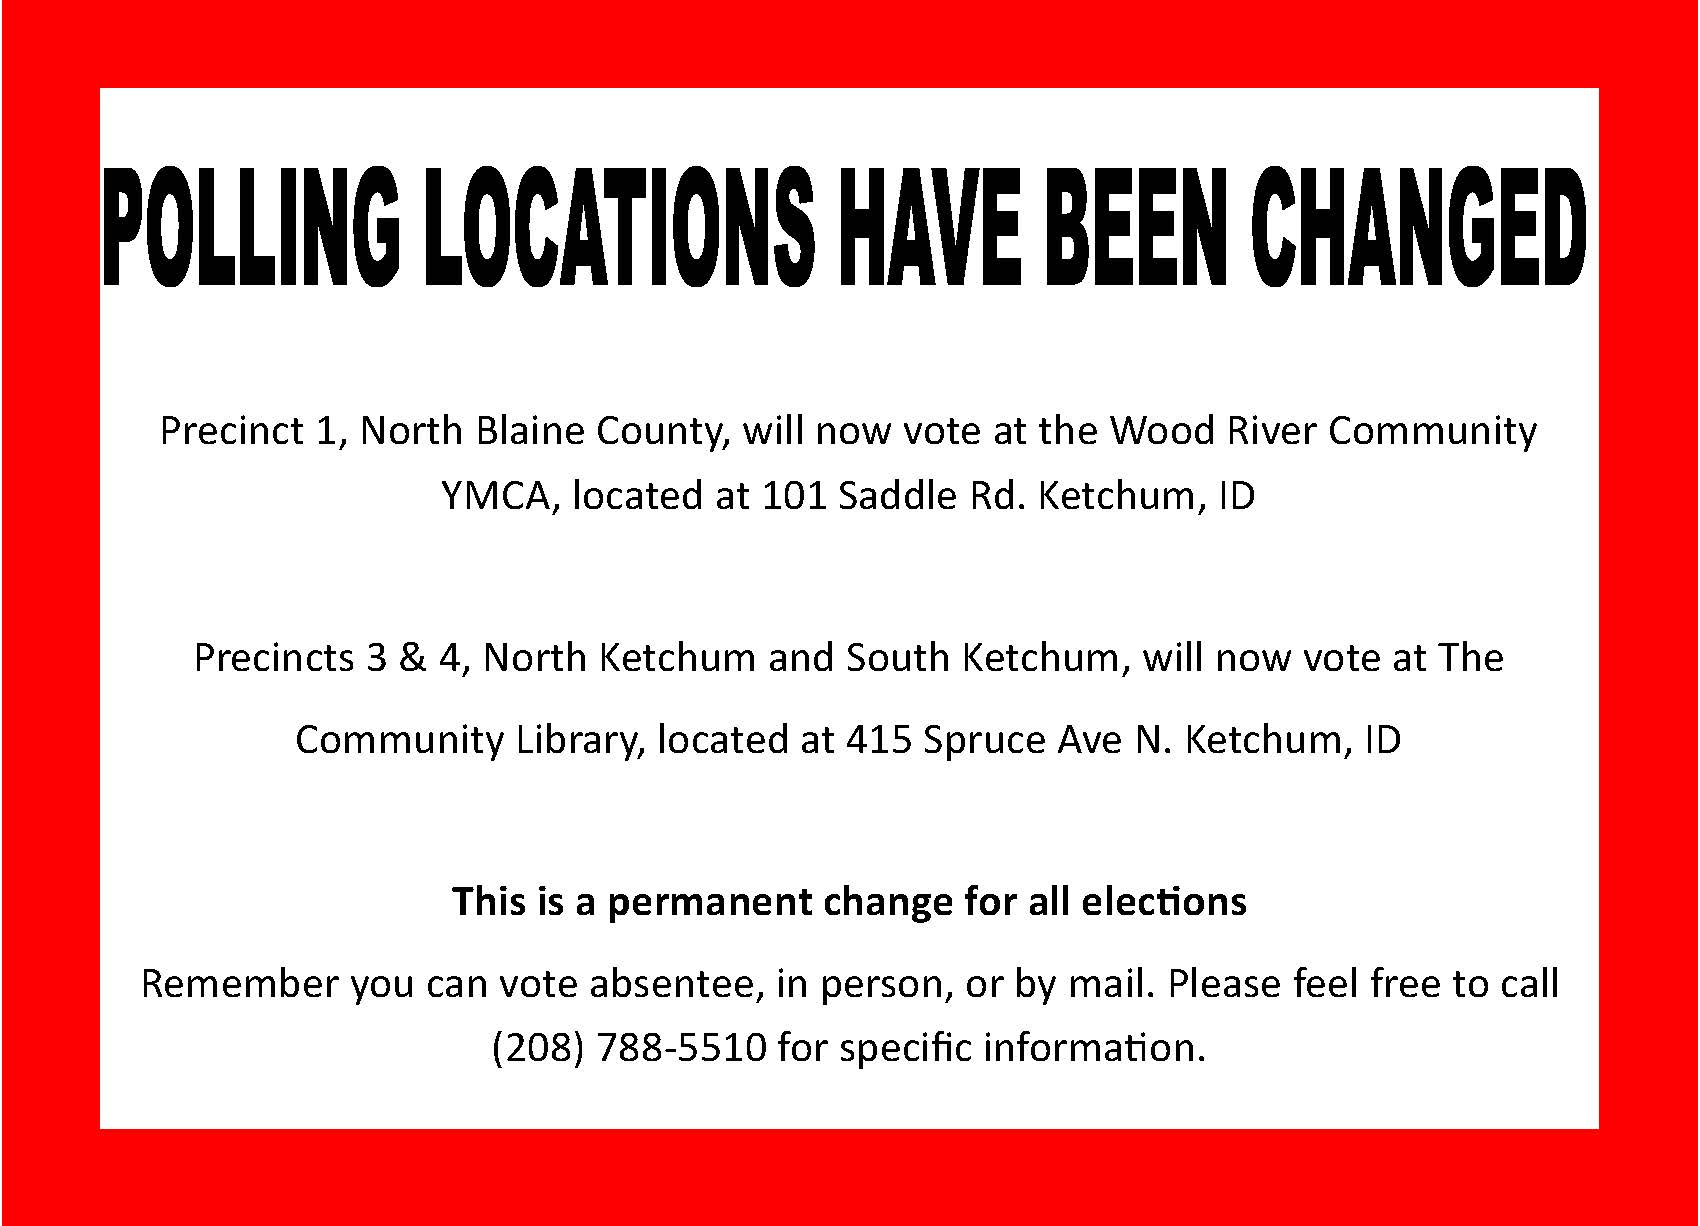 Polling location changes